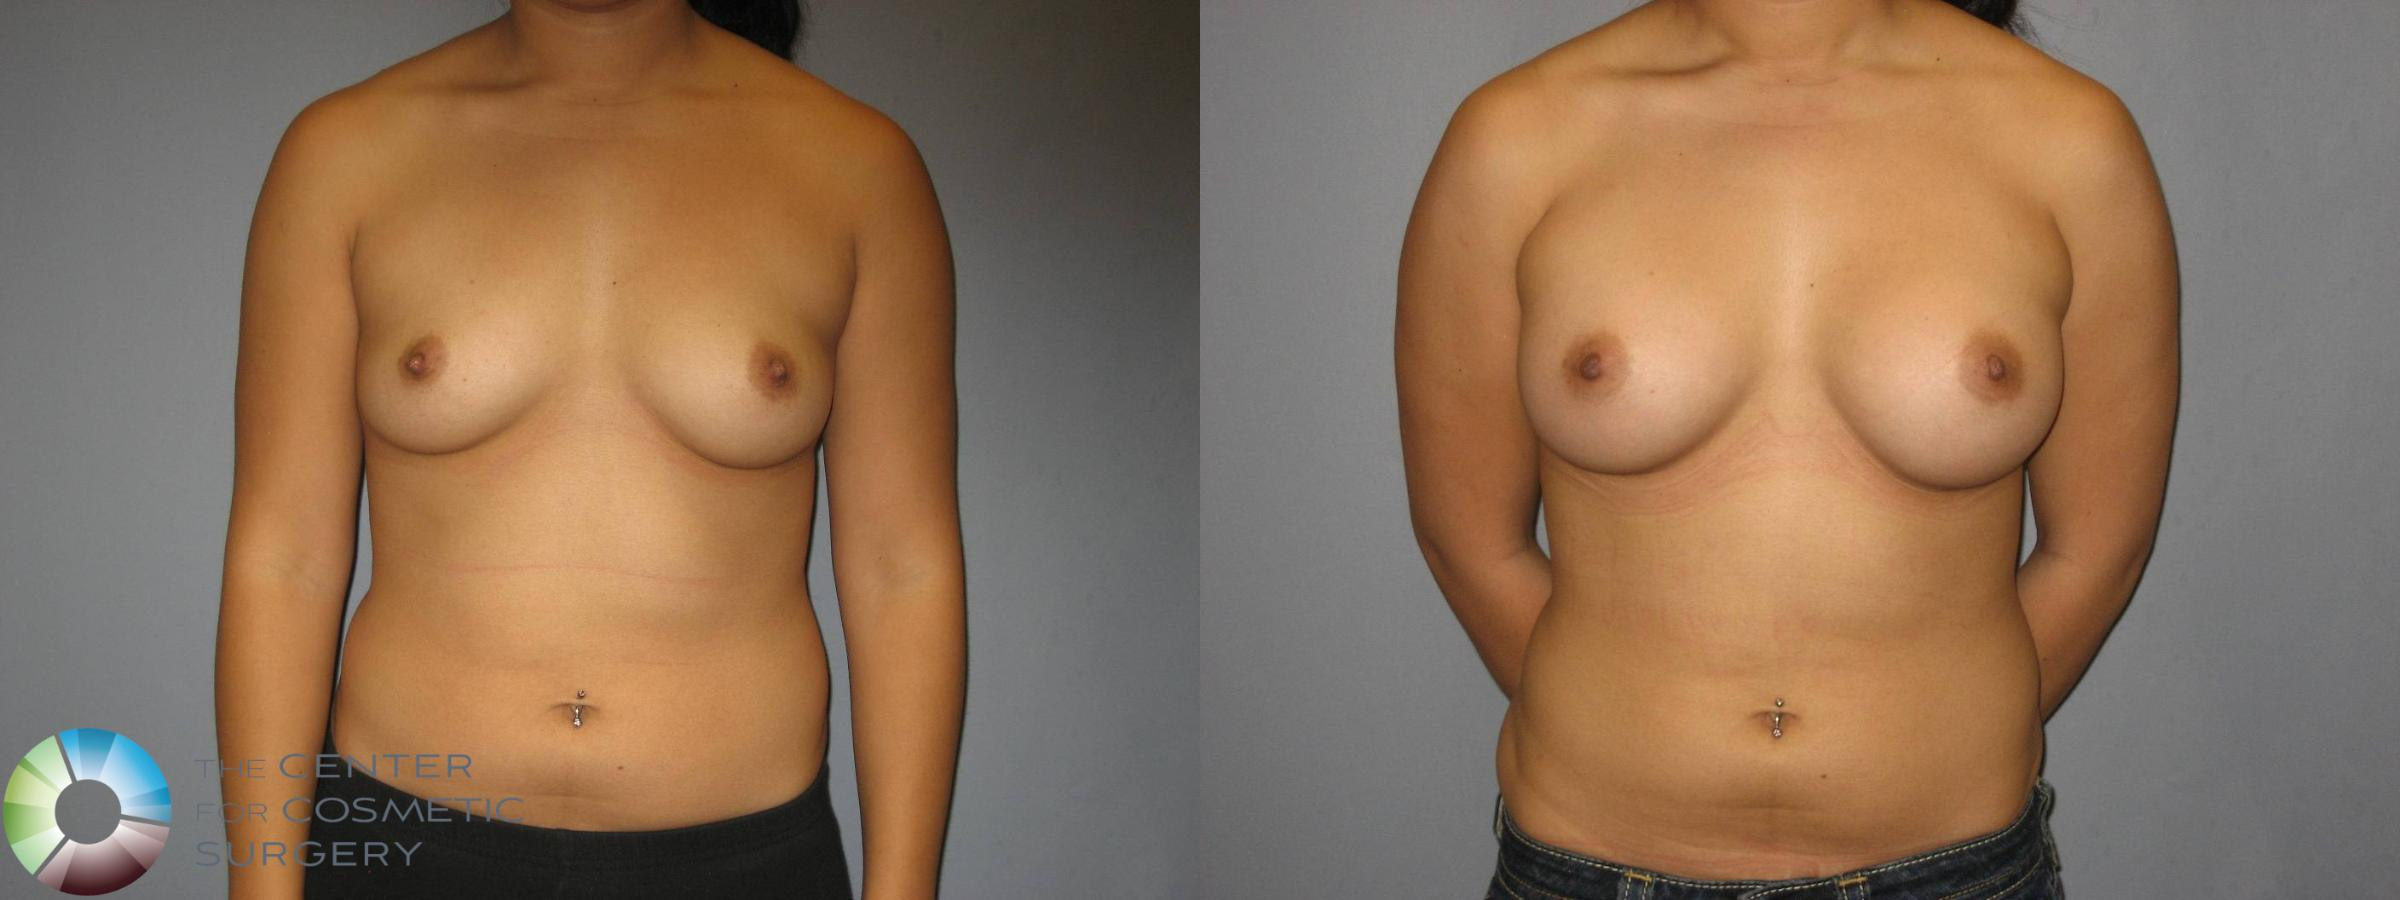 Breast Augmentation Case 360 Before & After View #1 | Golden, CO | The Center for Cosmetic Surgery